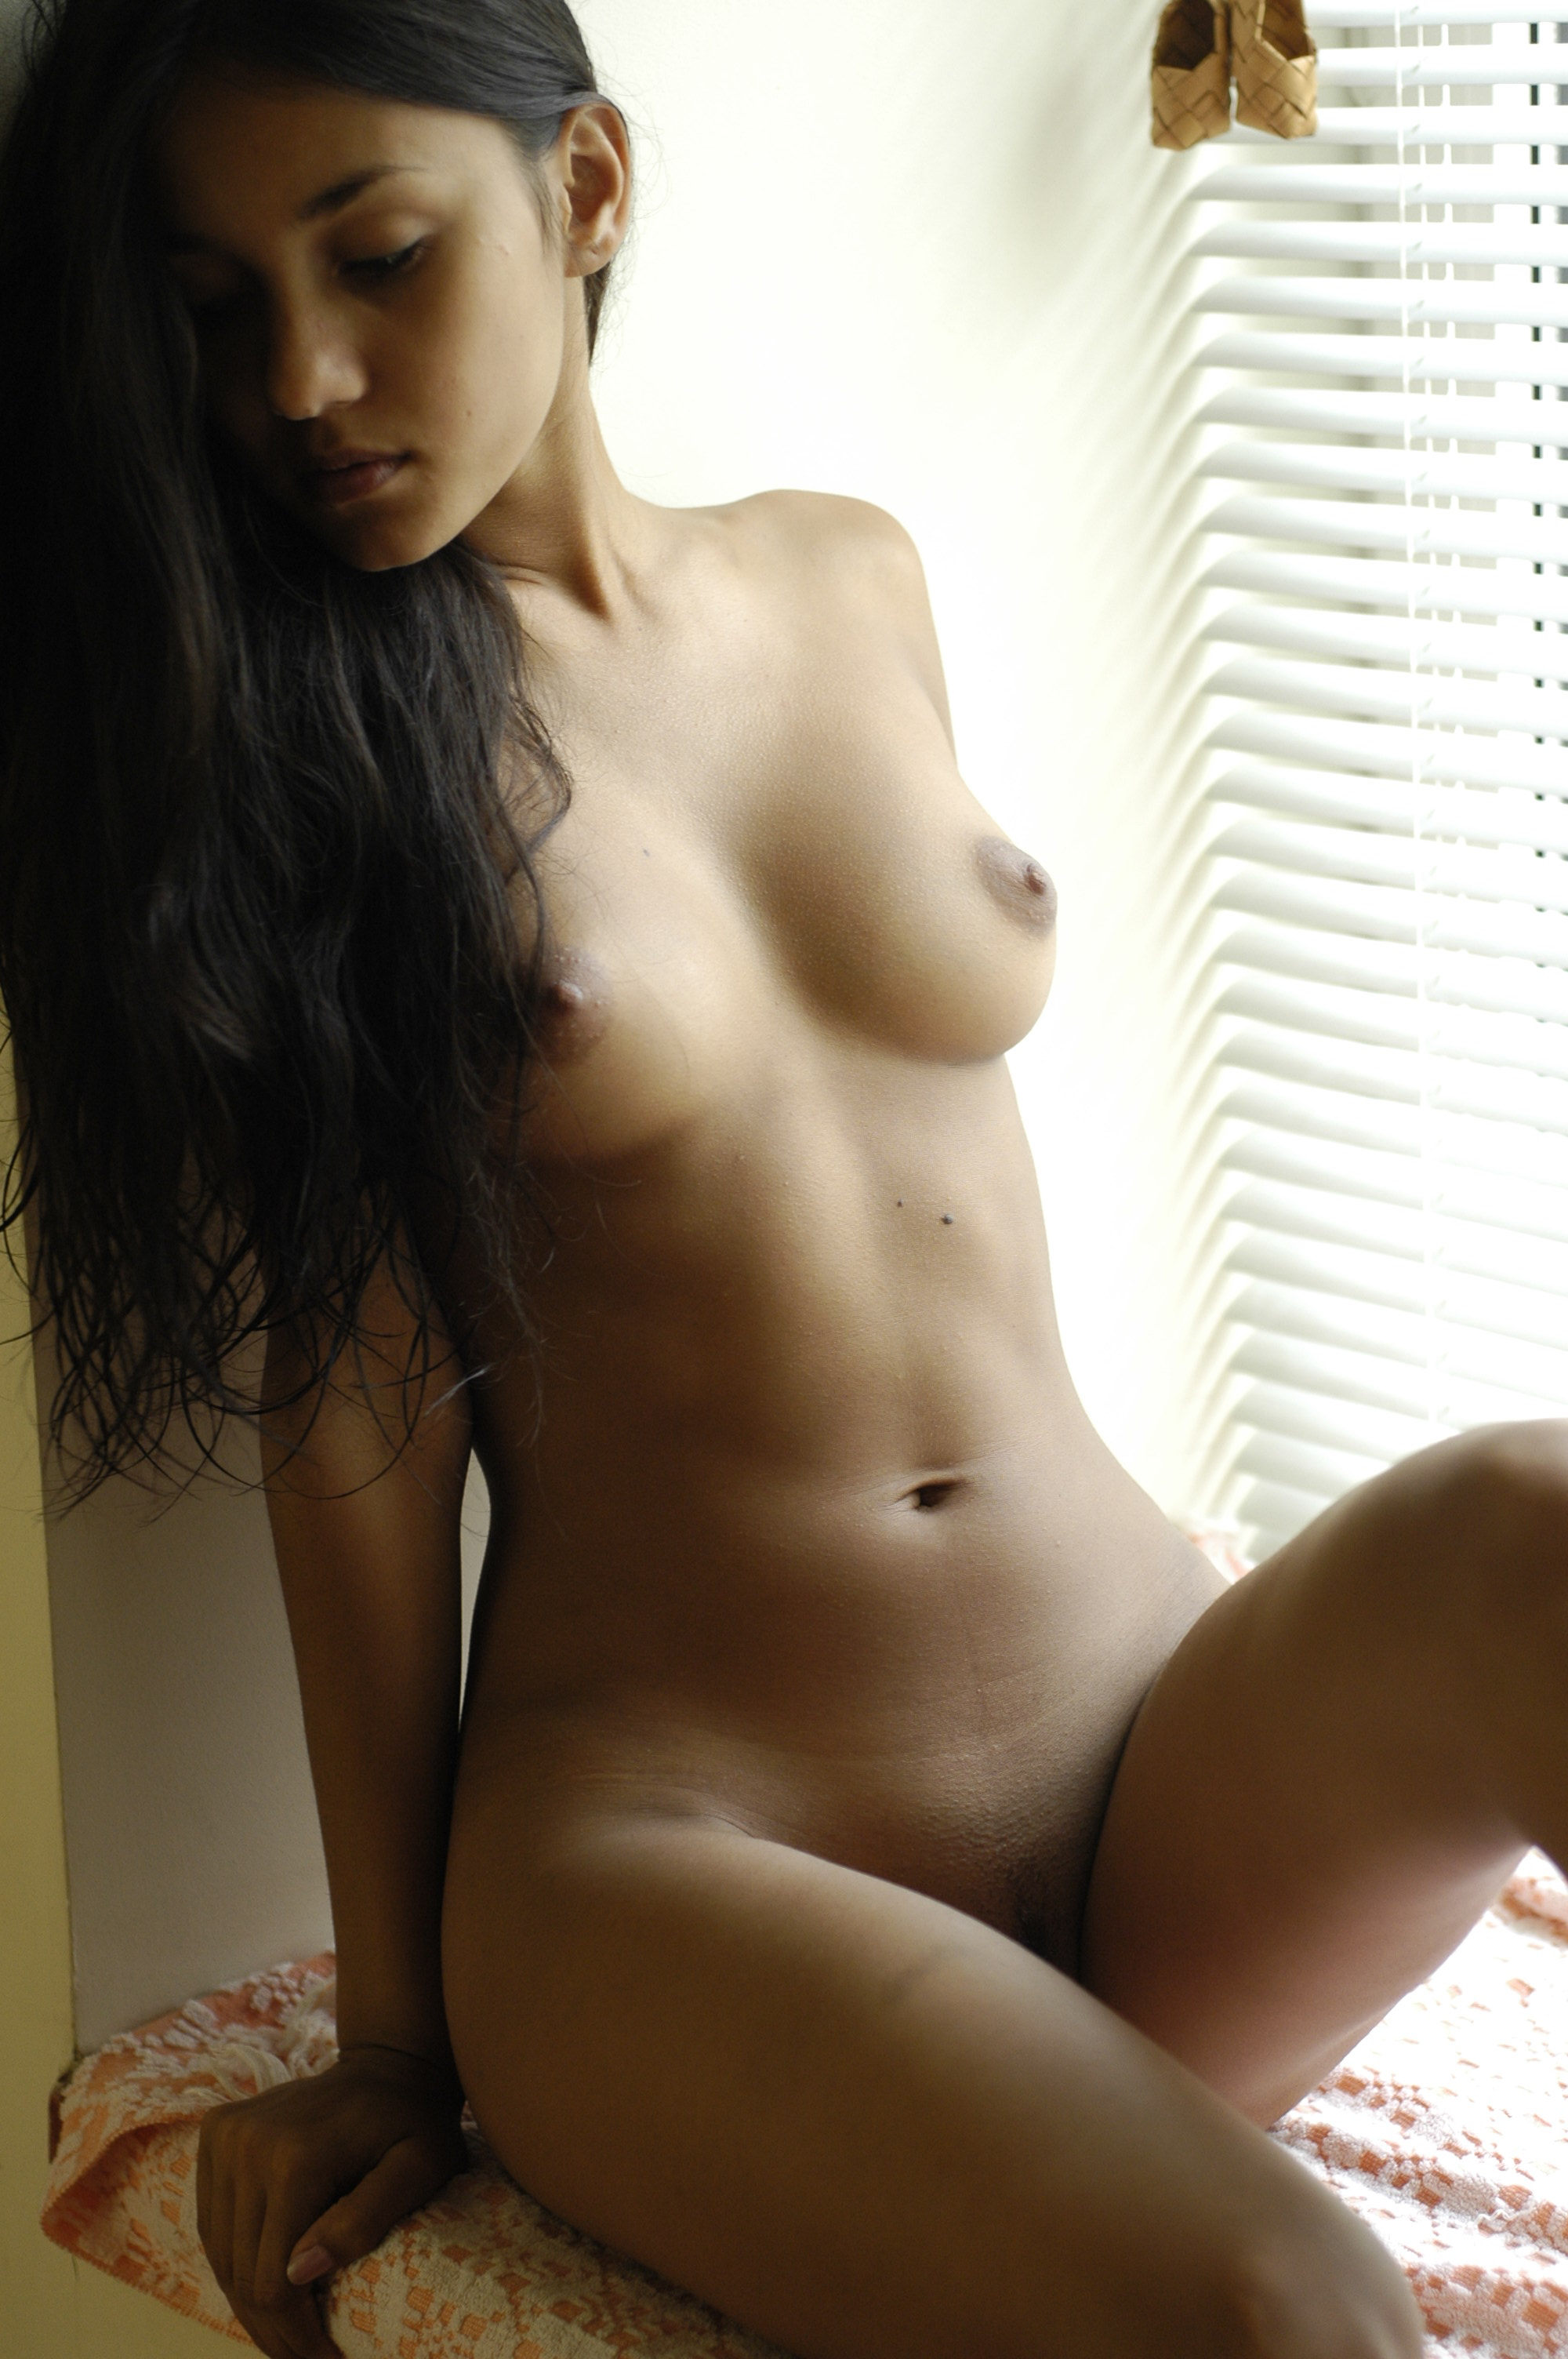 Asian emo girls nude